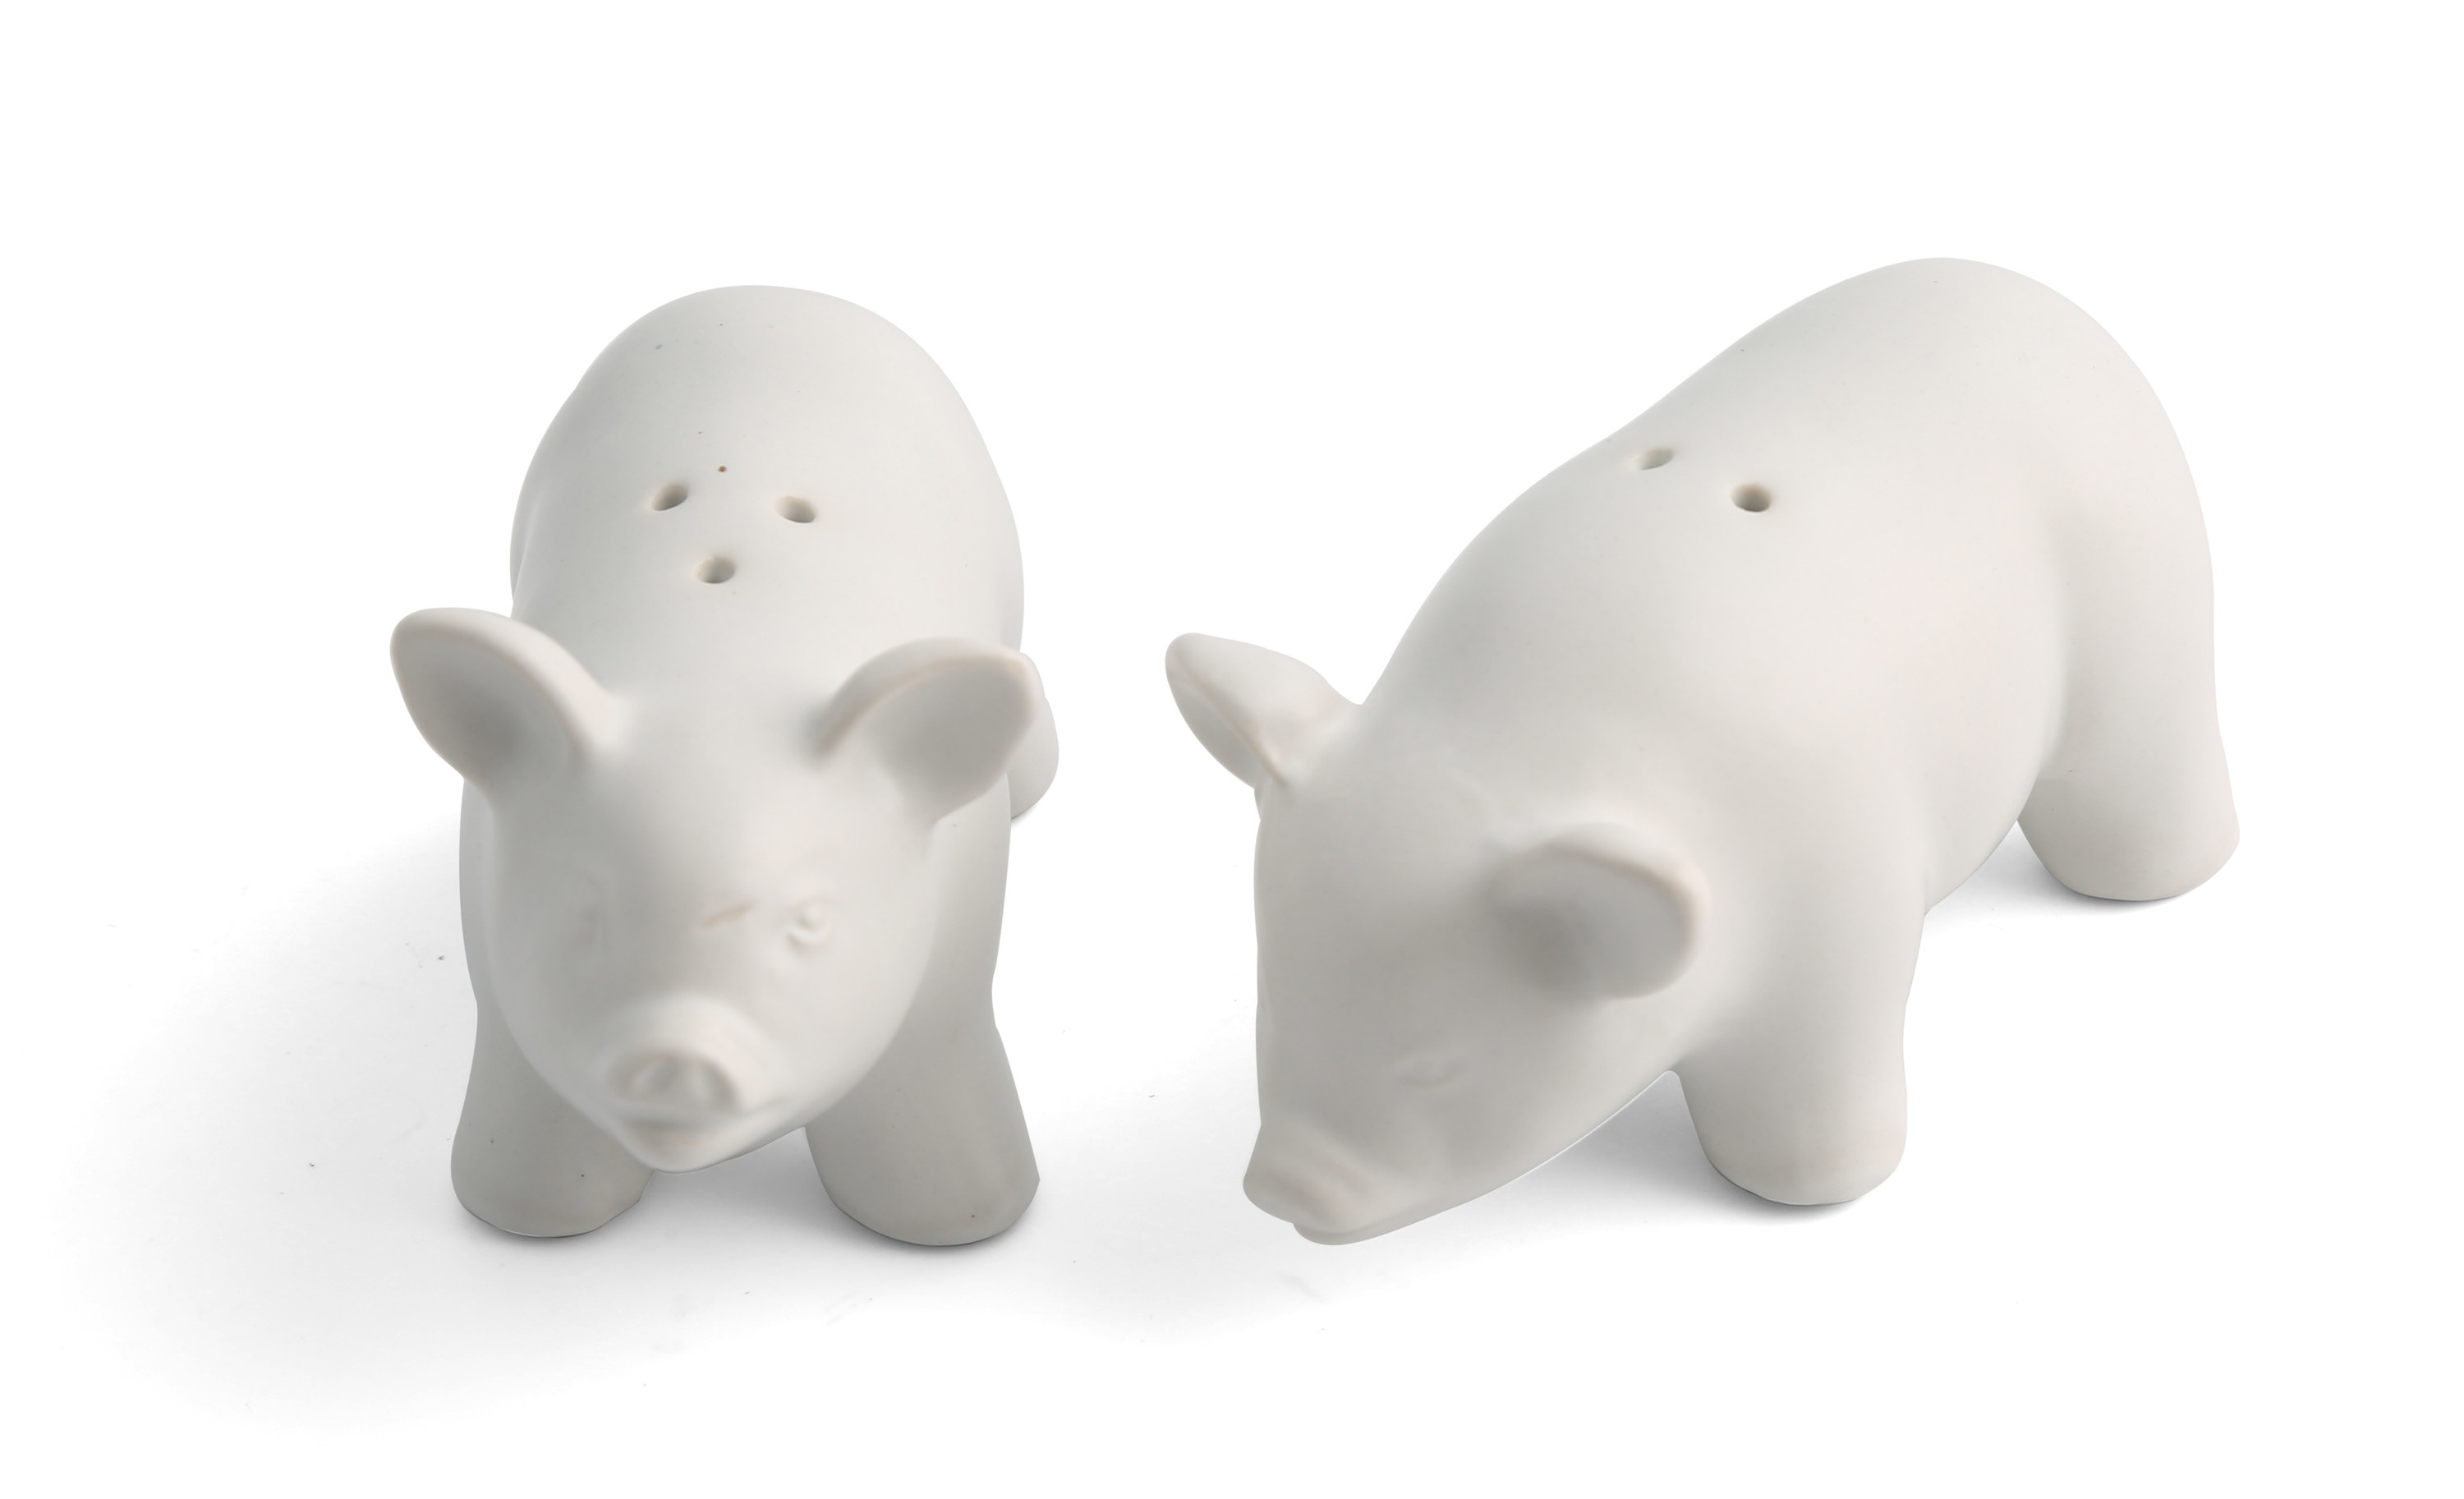 White ceramic pig-shaped salt and pepper shakers